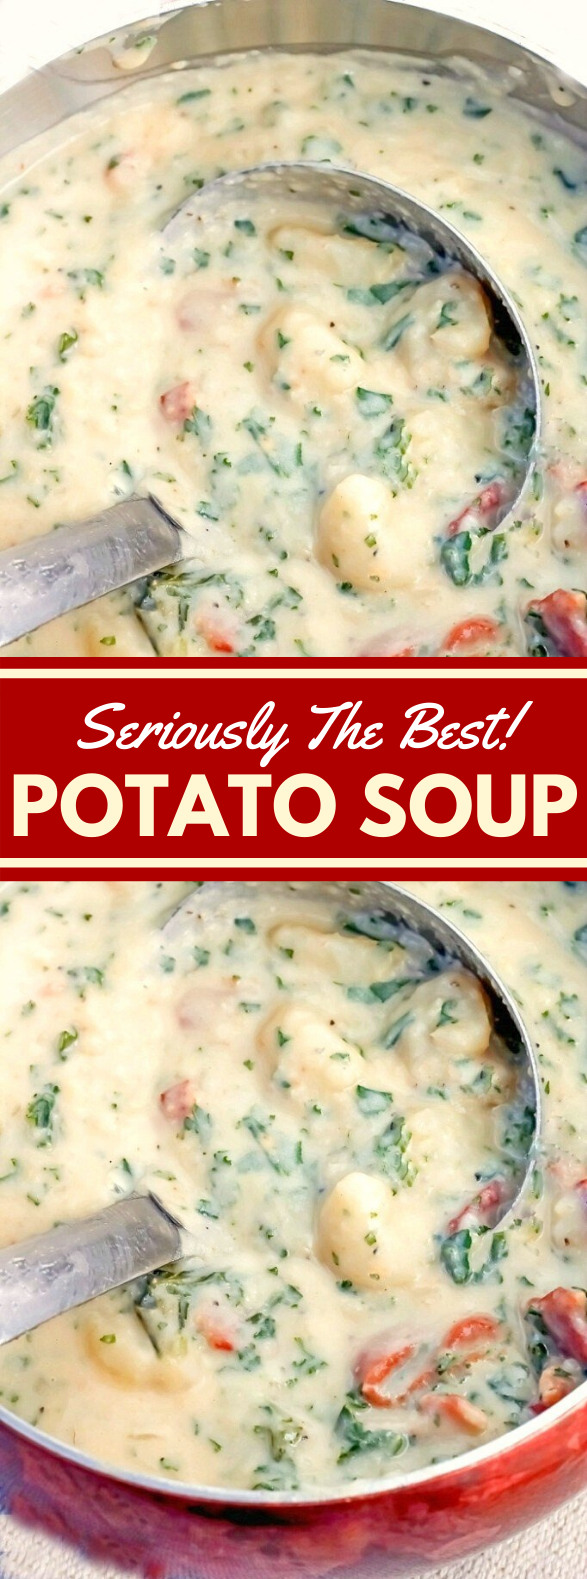 THE BEST POTATO SOUP #falldinner #vegetarian